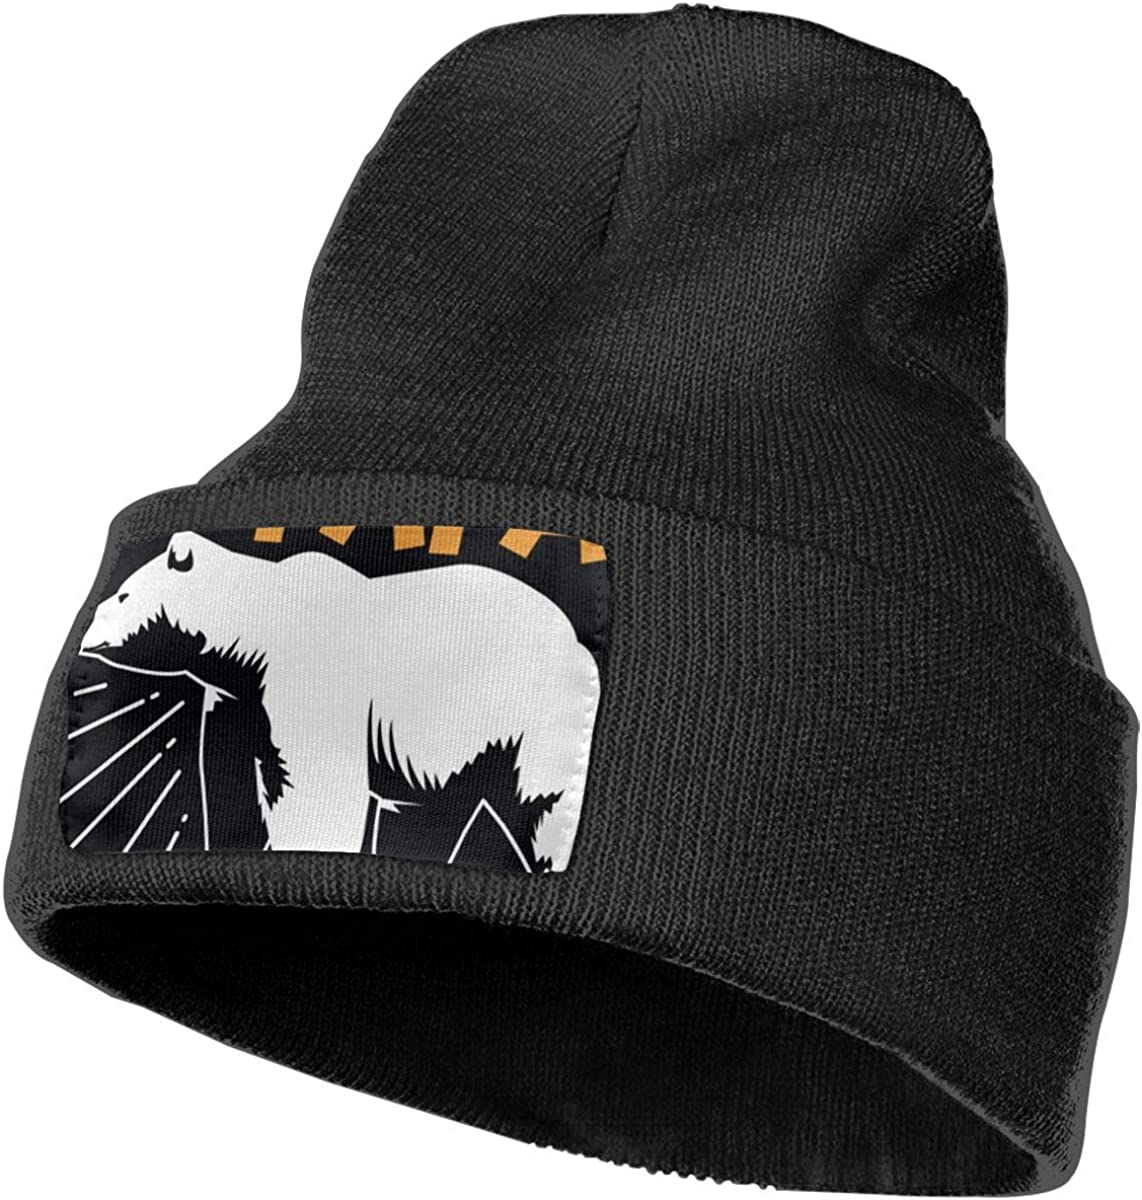 COJOP Papa Bear Winter Beanie Unisex Cuffed Plain Skull Knit Hat Cap